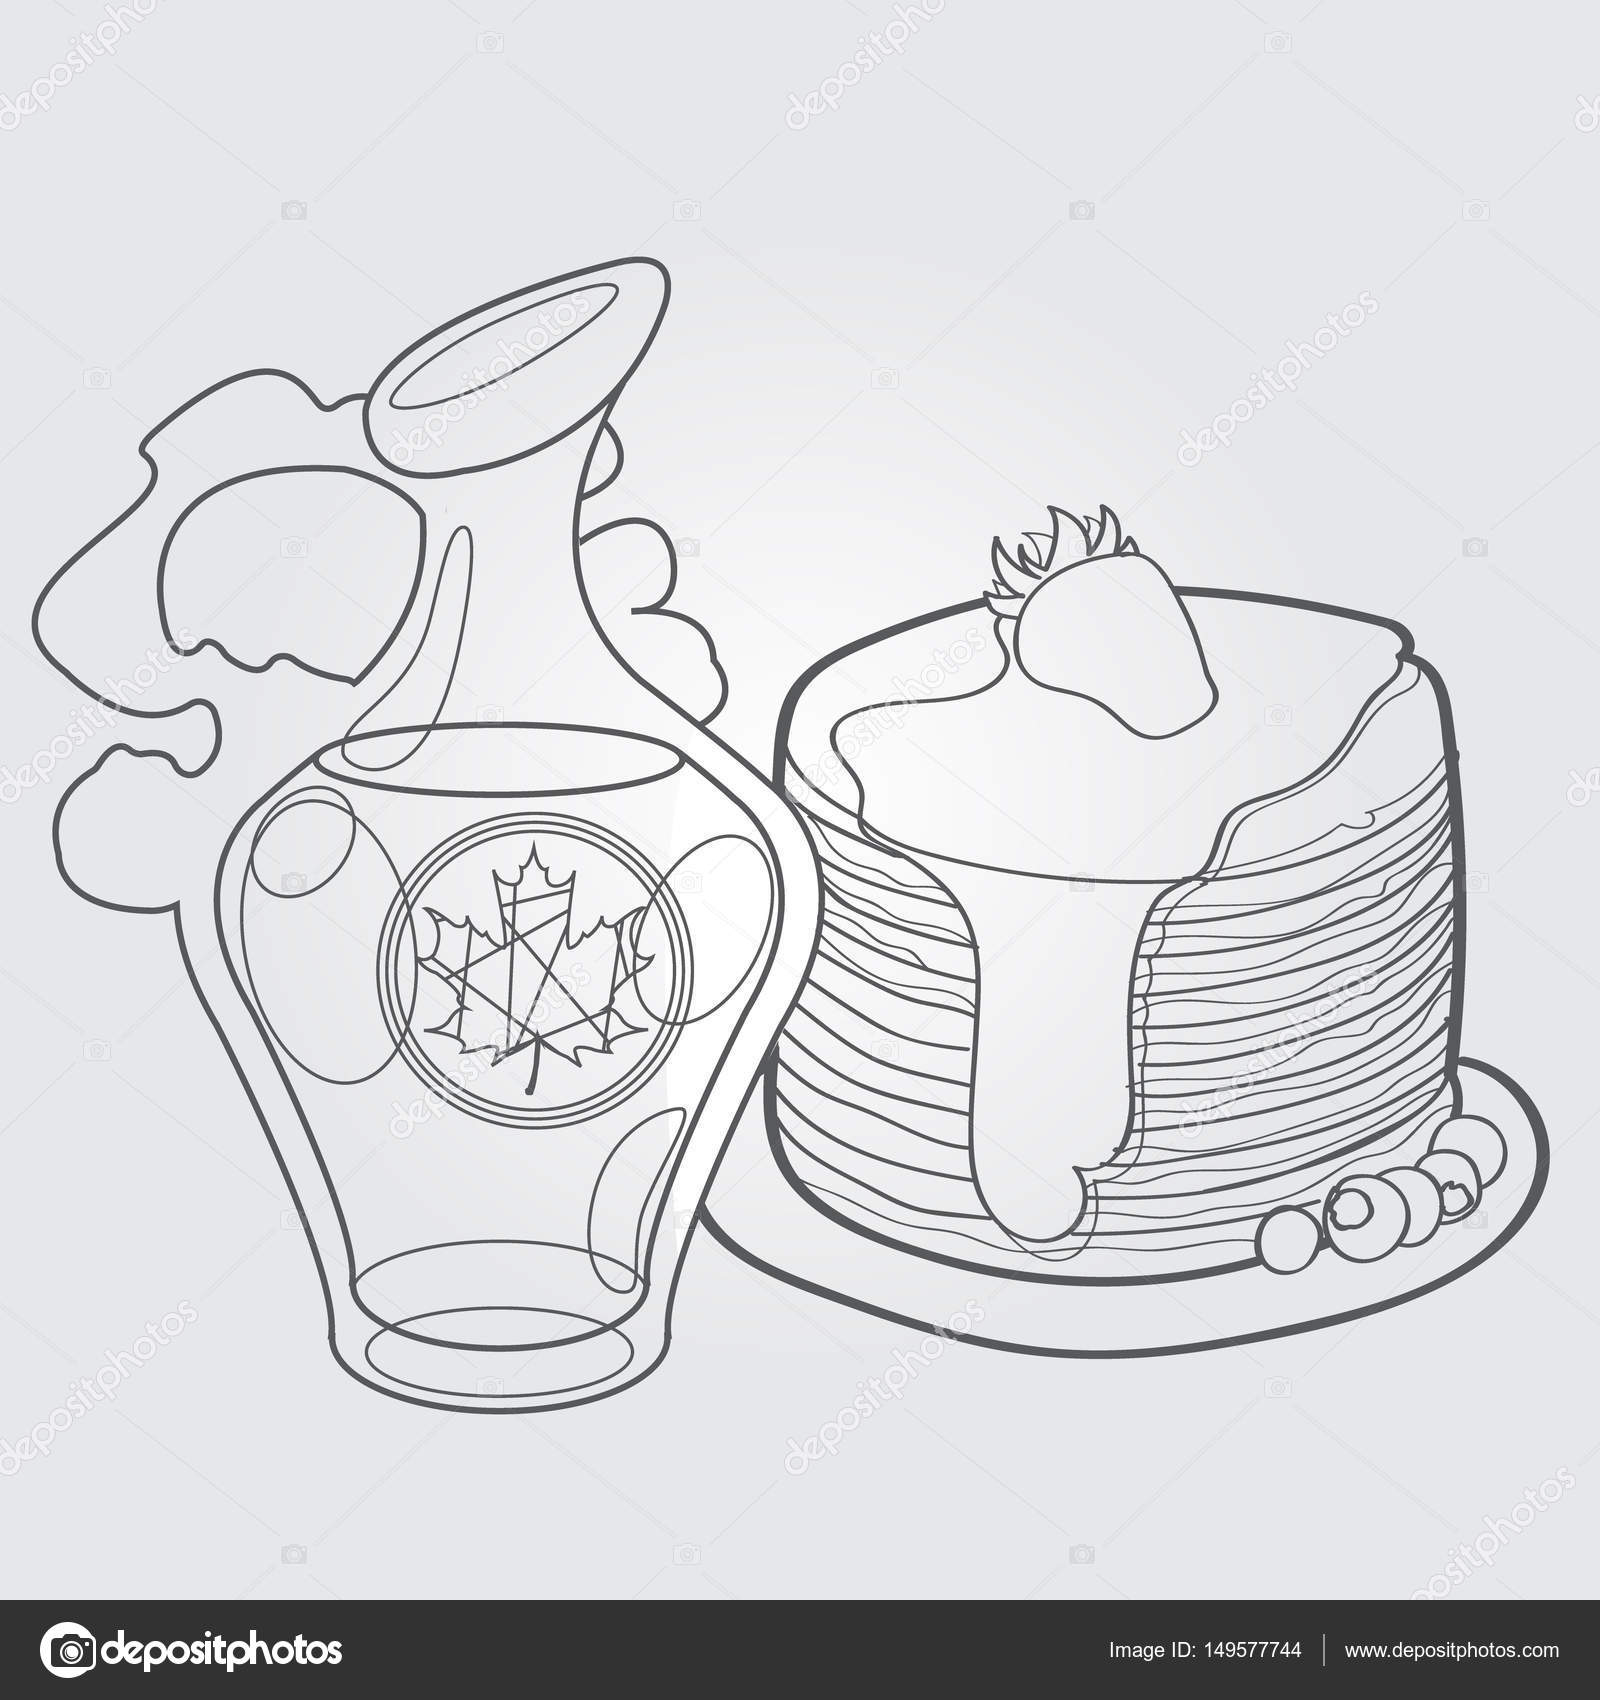 Syrup Drawing at GetDrawings.com   Free for personal use Syrup ...